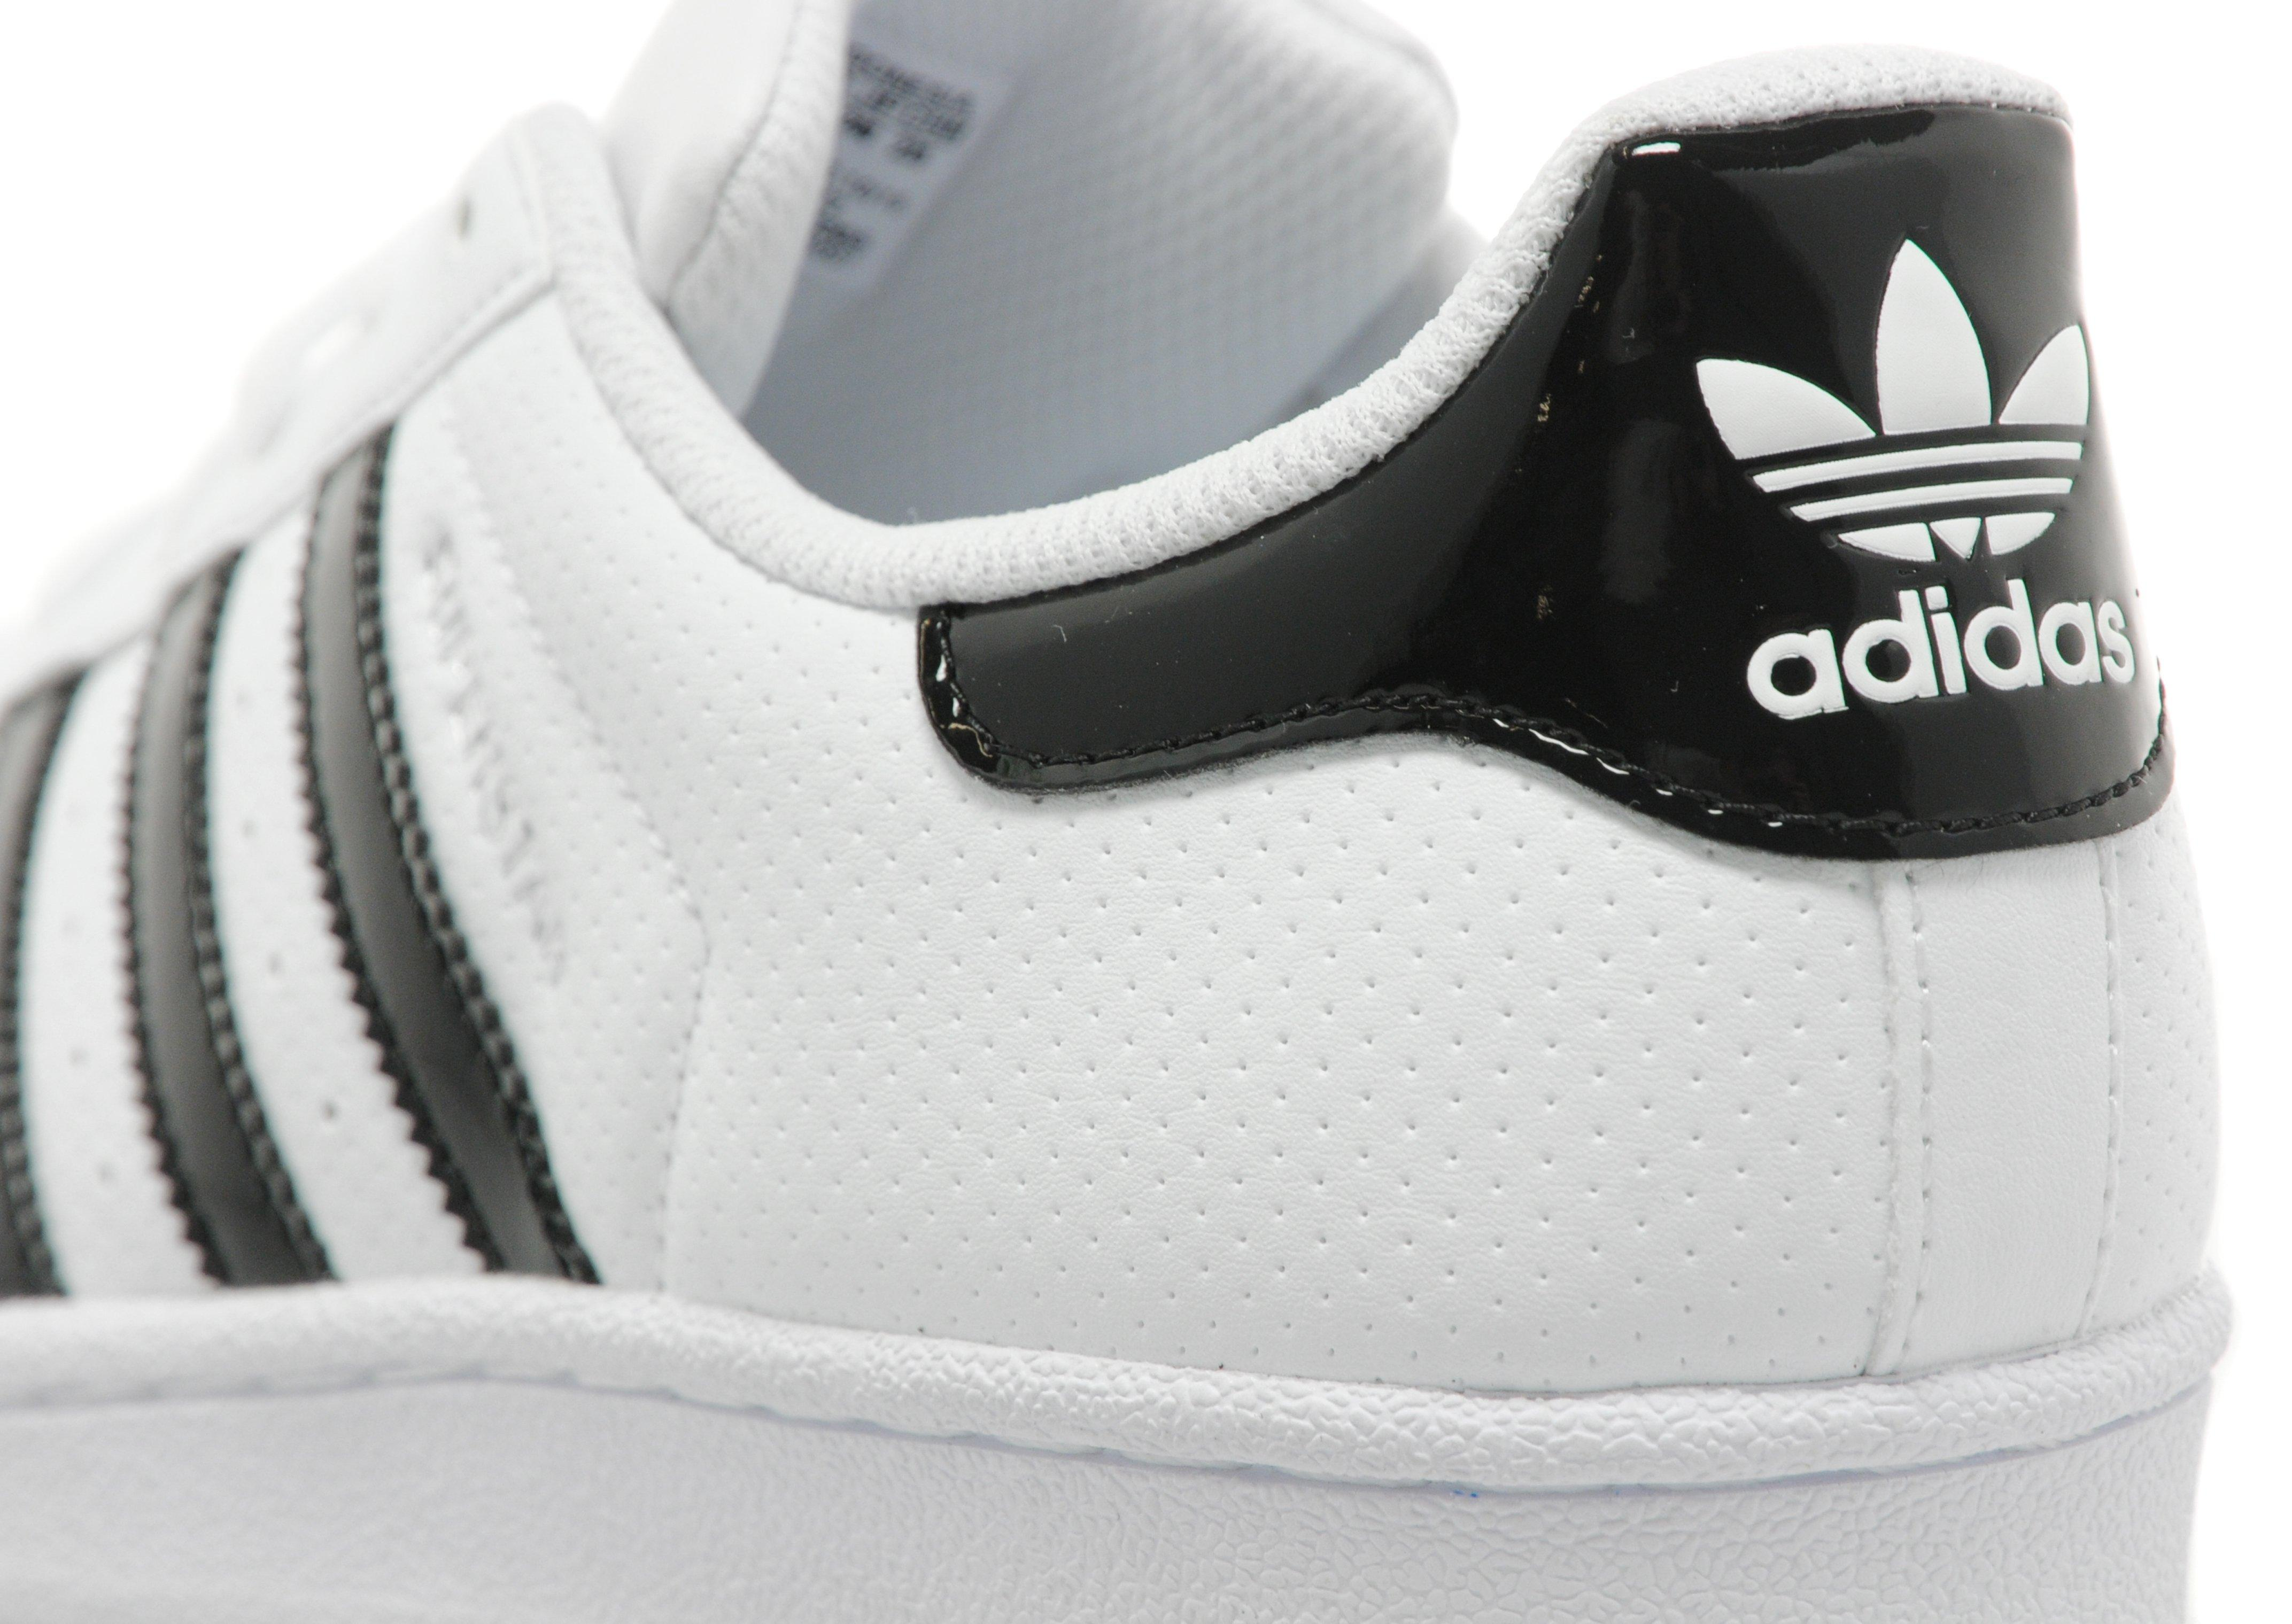 13a523b0d4a69 Adidas Shoes Youtube Men Trainers Uk